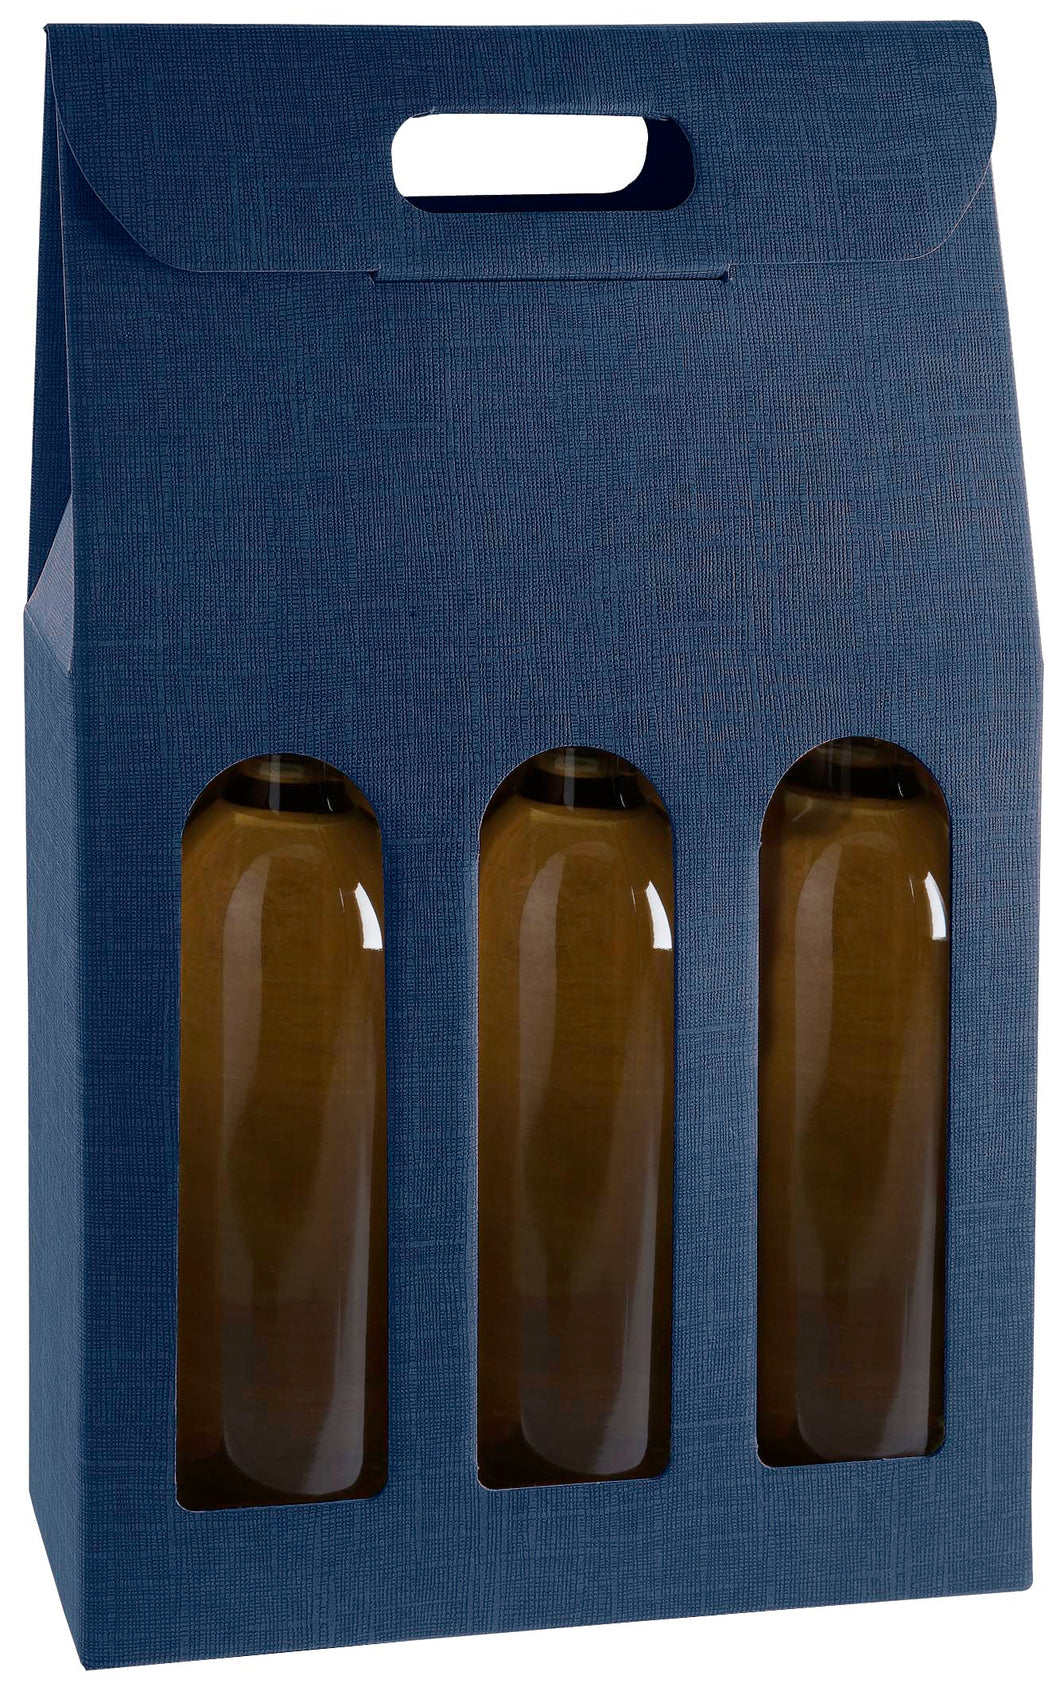 Scala carrier gift box with window for 3 bottles in blue (x25)